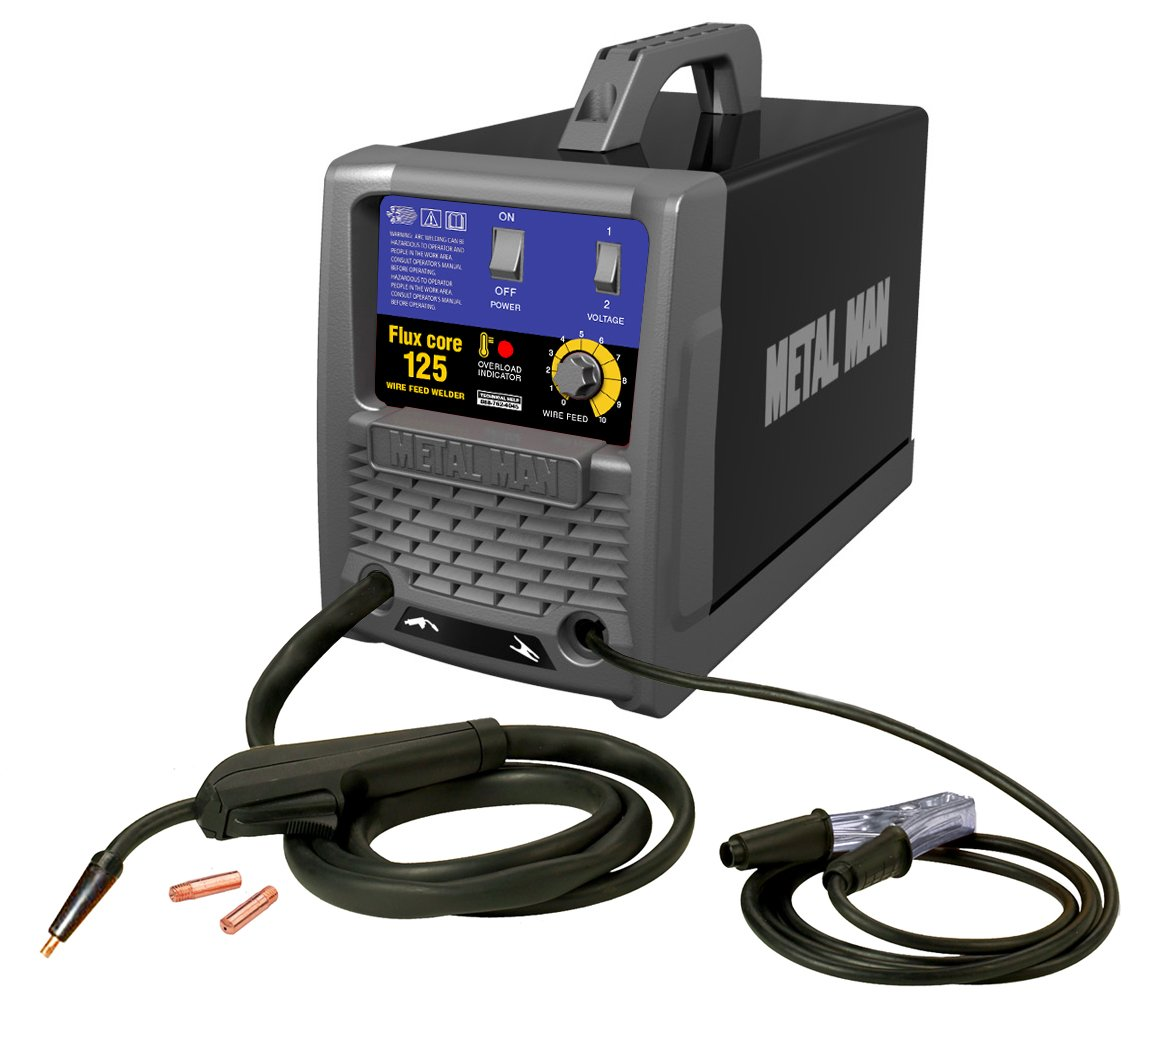 Lincoln Electric Welder Wiring Diagram Free Picture Library Spot Welding Schematic Metal Man Fc125 125 Amp 115 Volt Flux Core Wire Feed